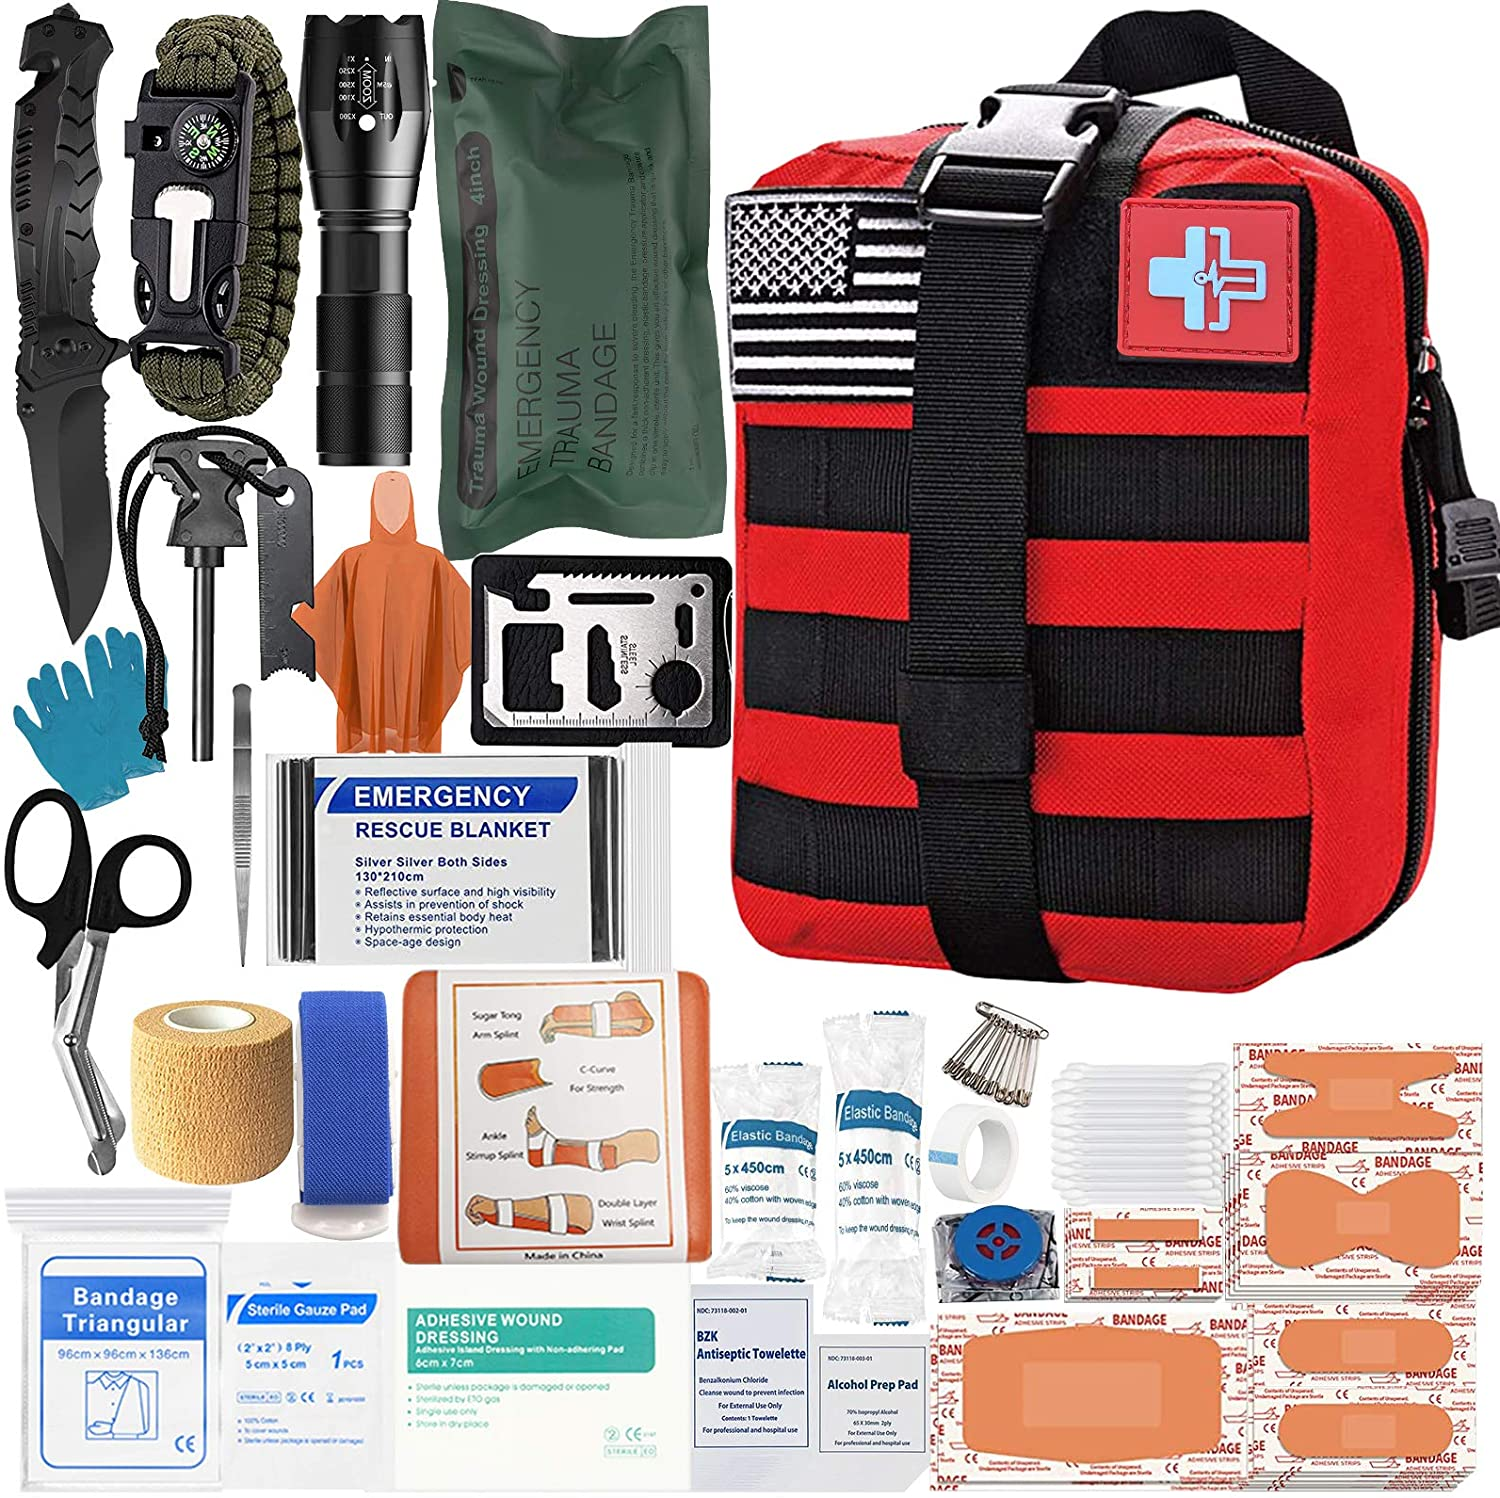 Trauma First Aid Kit with Survival Gear Outdoor Tactical Gear Set Military Grade Molle System for Camper Travel Hunting Hiking and Adventures